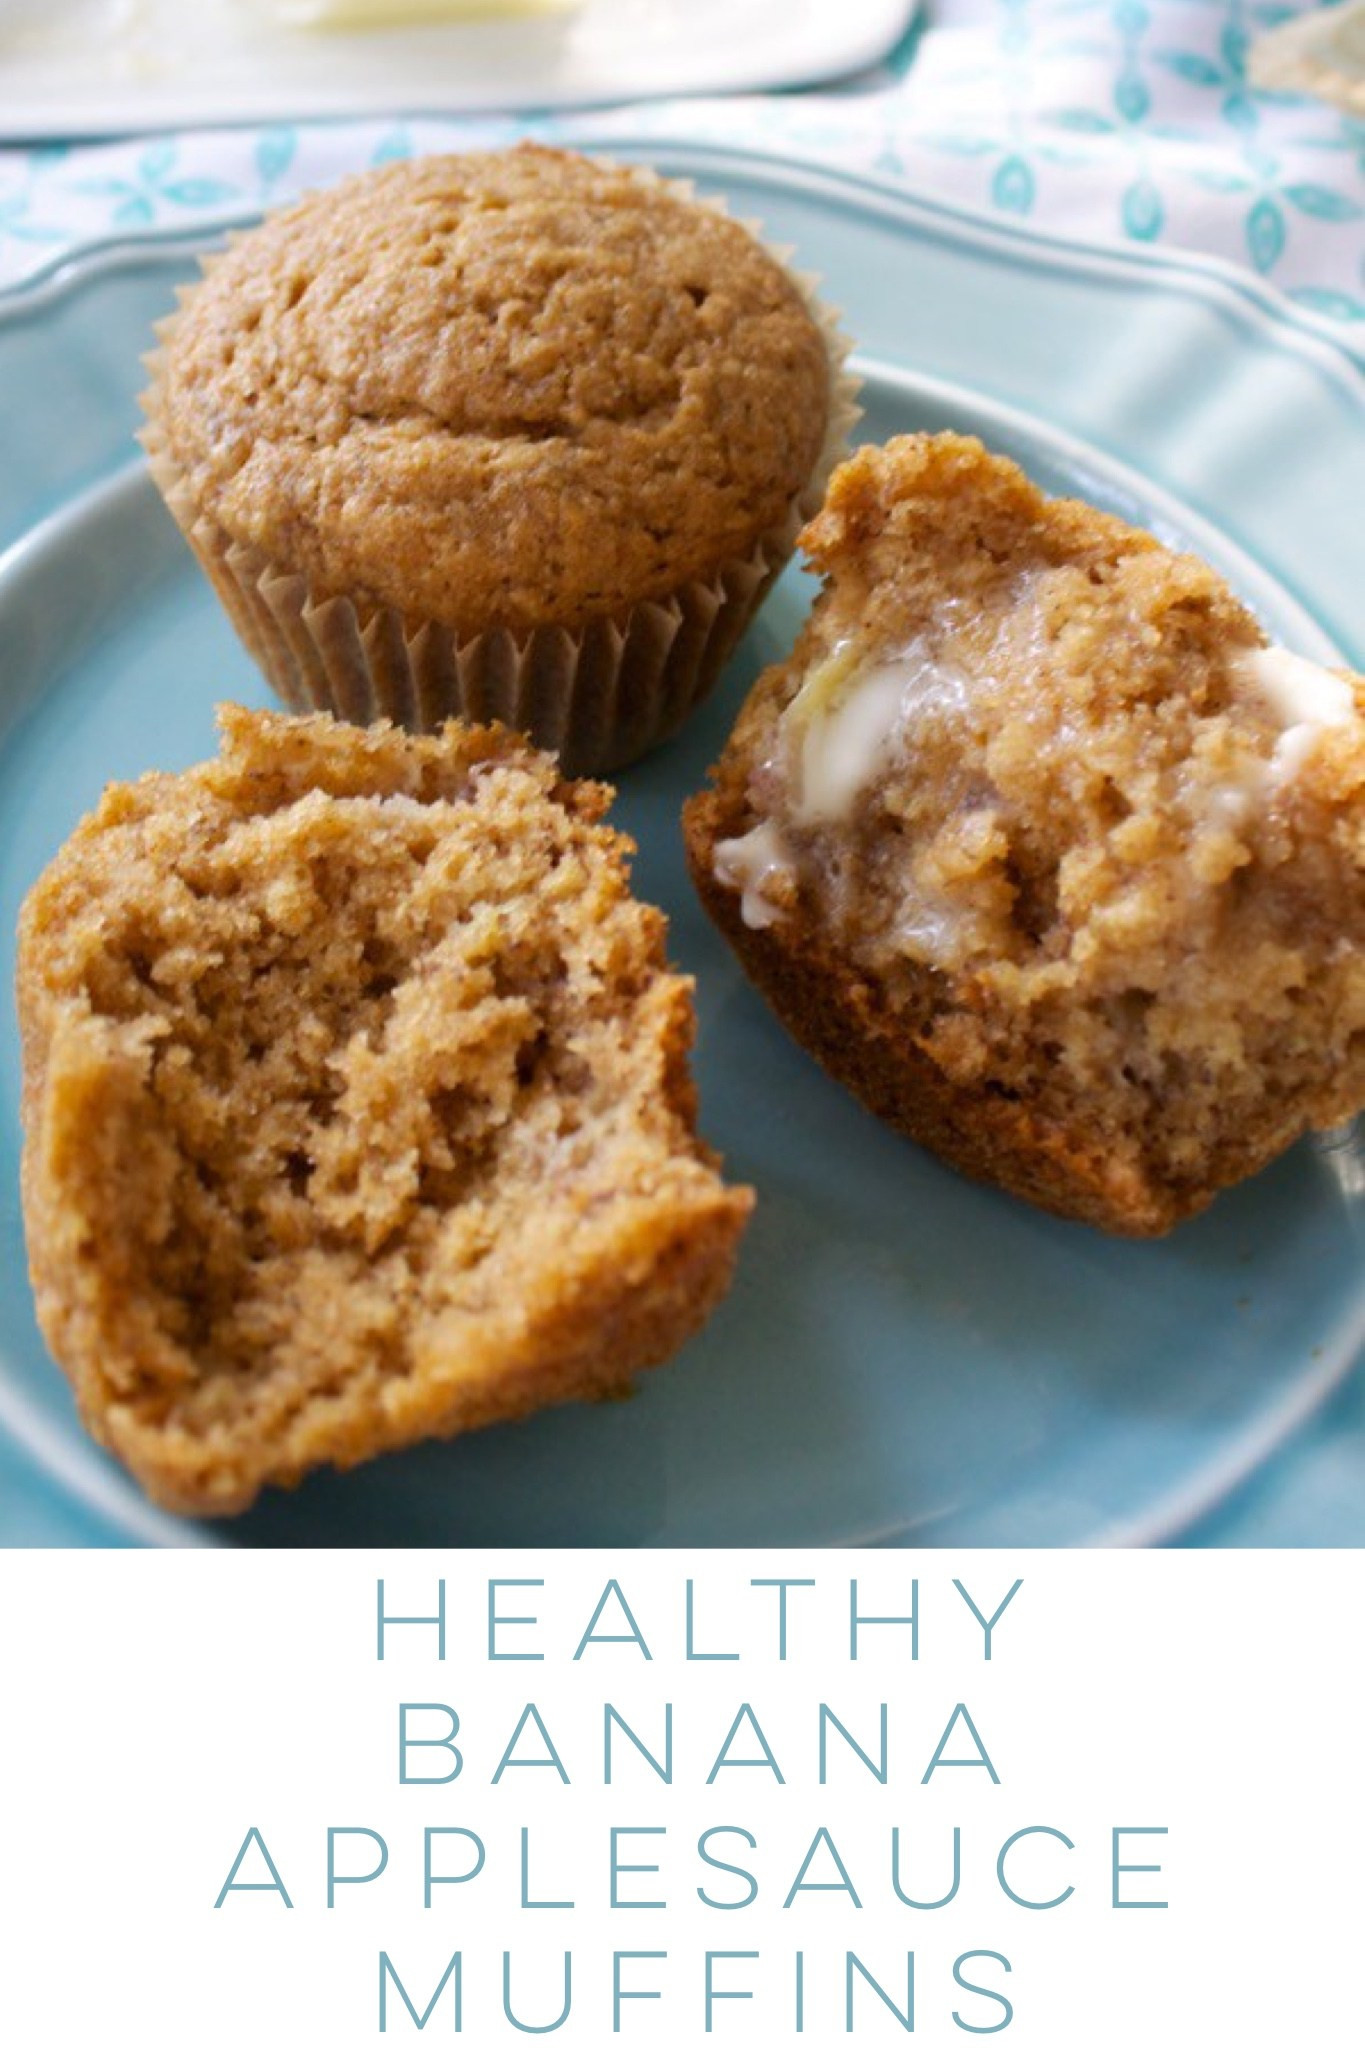 Healthy Banana Muffins with Applesauce 20 Best Healthy Banana Applesauce Muffins Bet Dinner